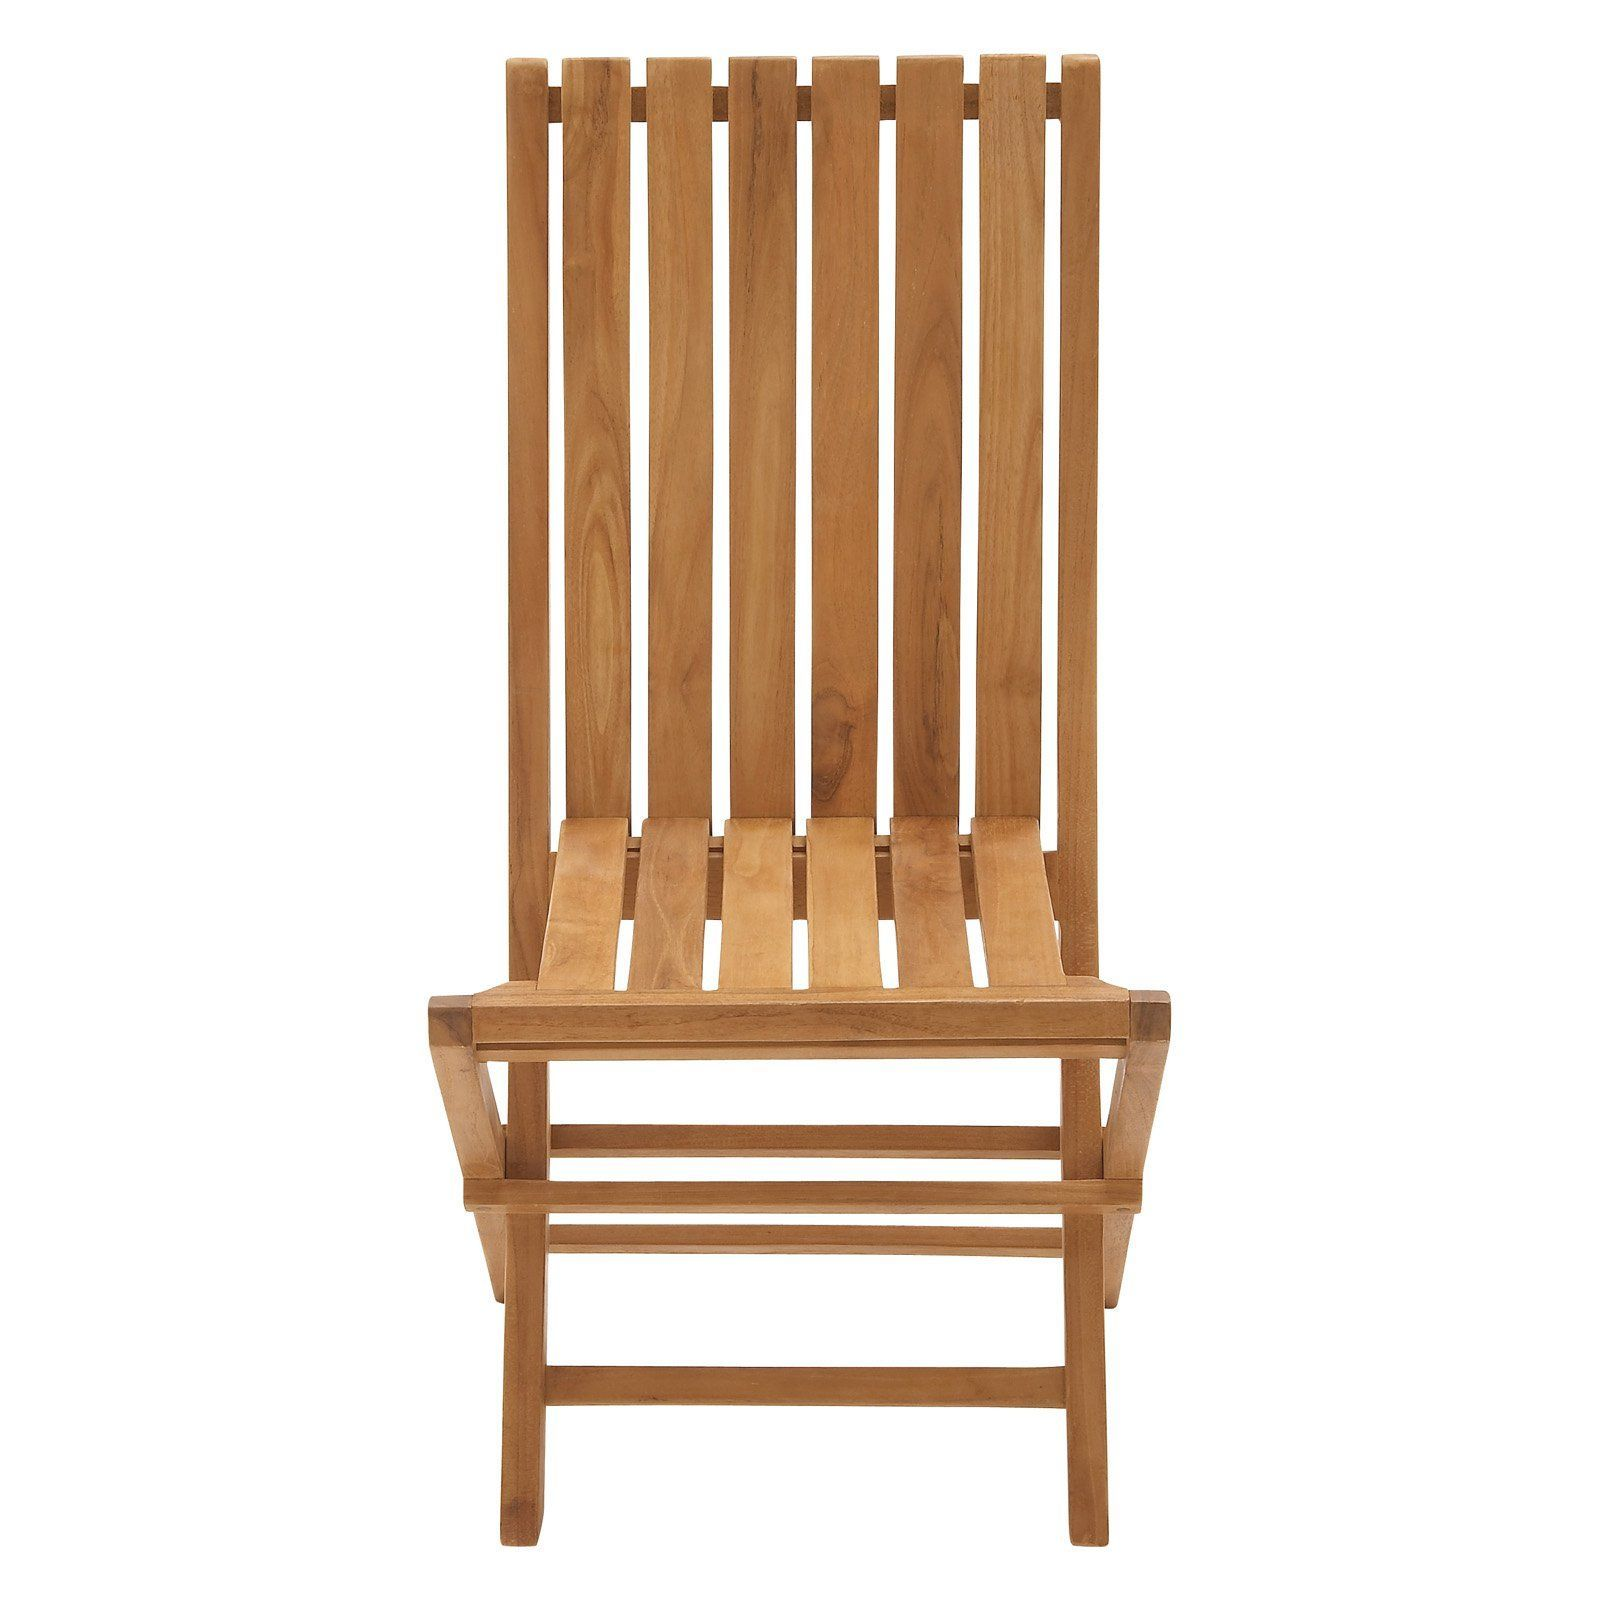 Outdoor DecMode Teak Folding Chair - Set of 2 - 92455 | Products ...